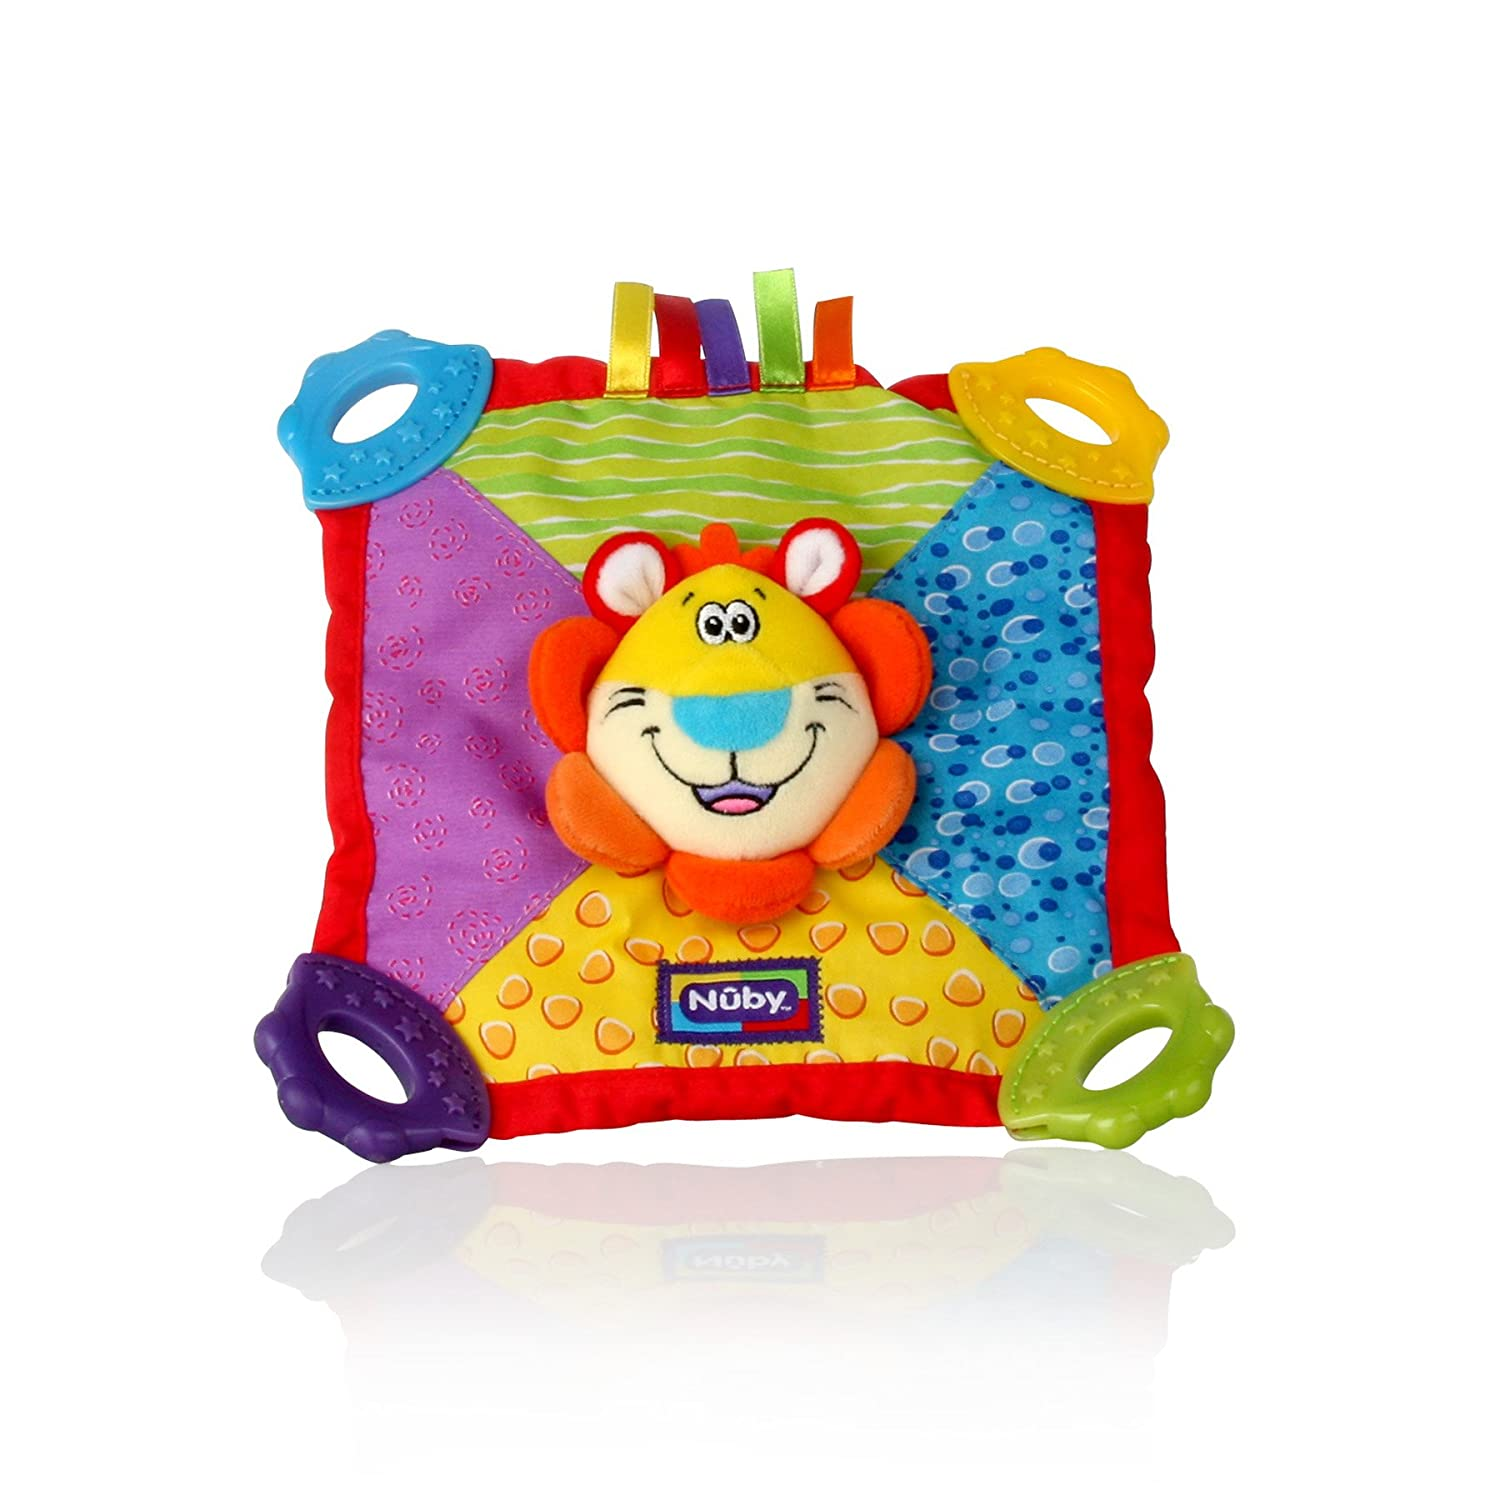 Nuby Plush Teether Blanket Lion 535668LN